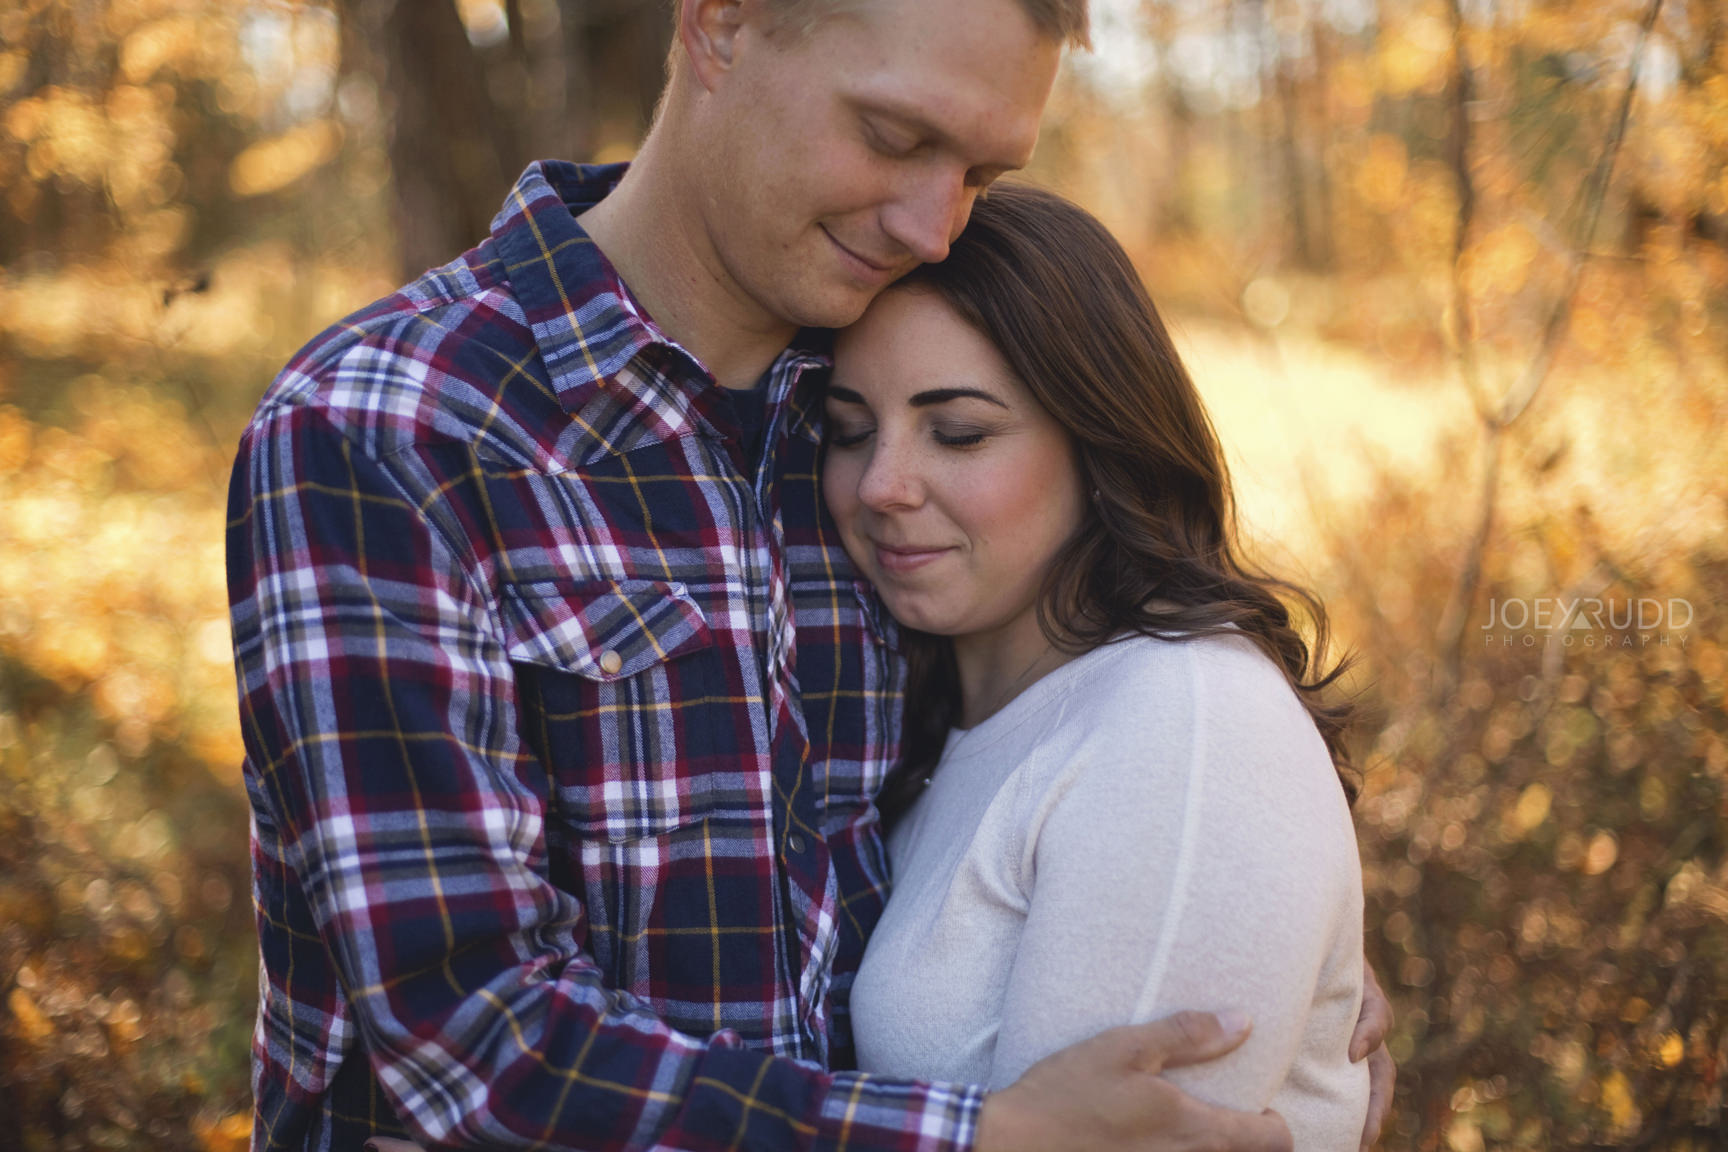 Carleton Place Engagement by Joey Rudd Photography Interesting and Fun